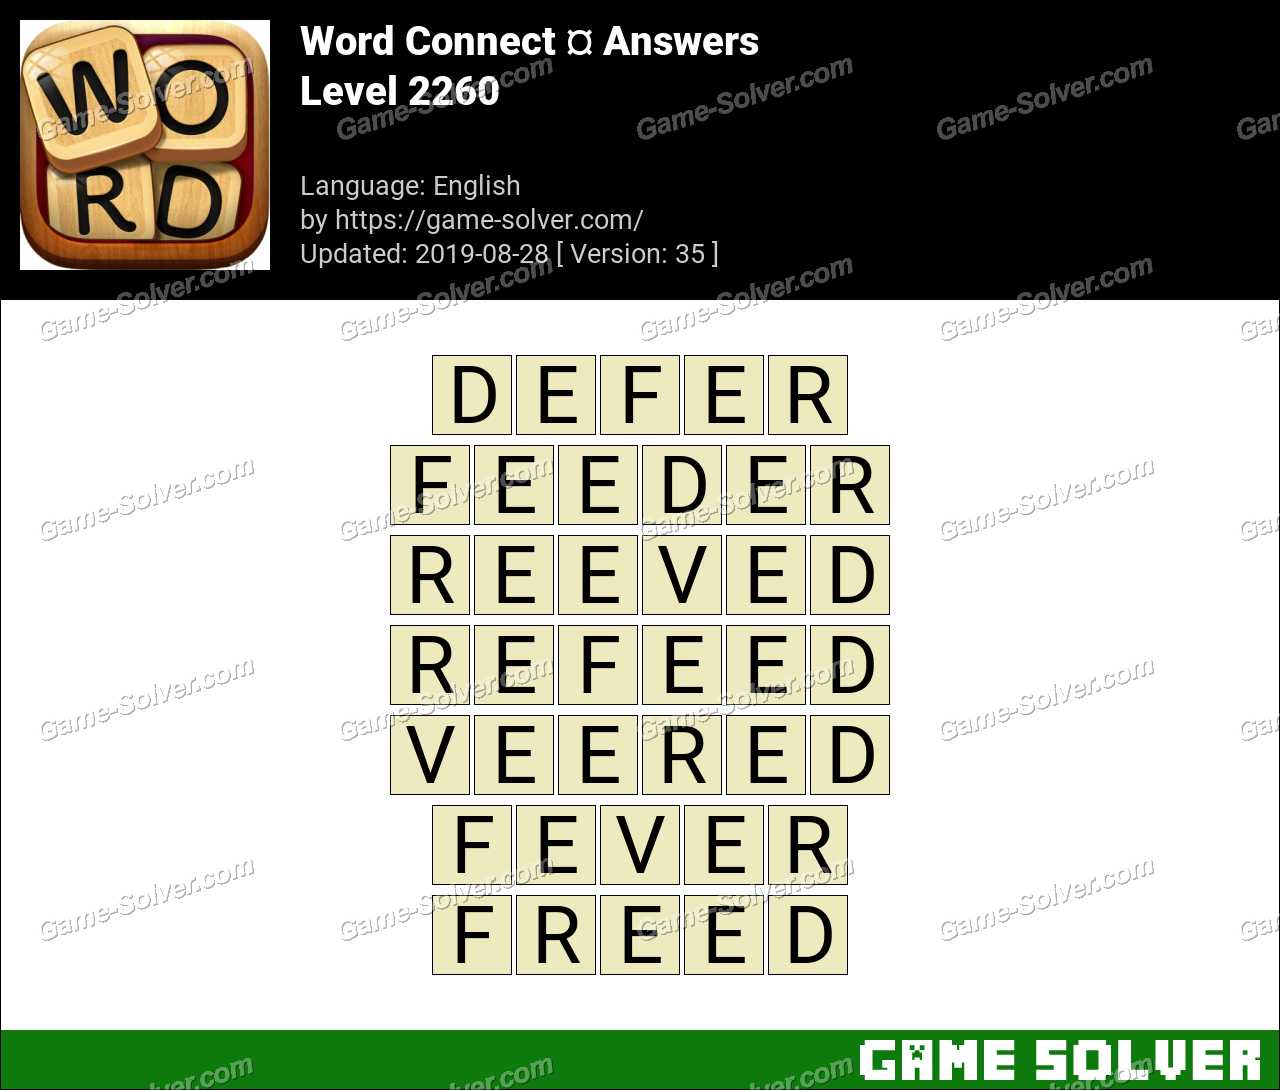 Word Connect Level 2260 Answers